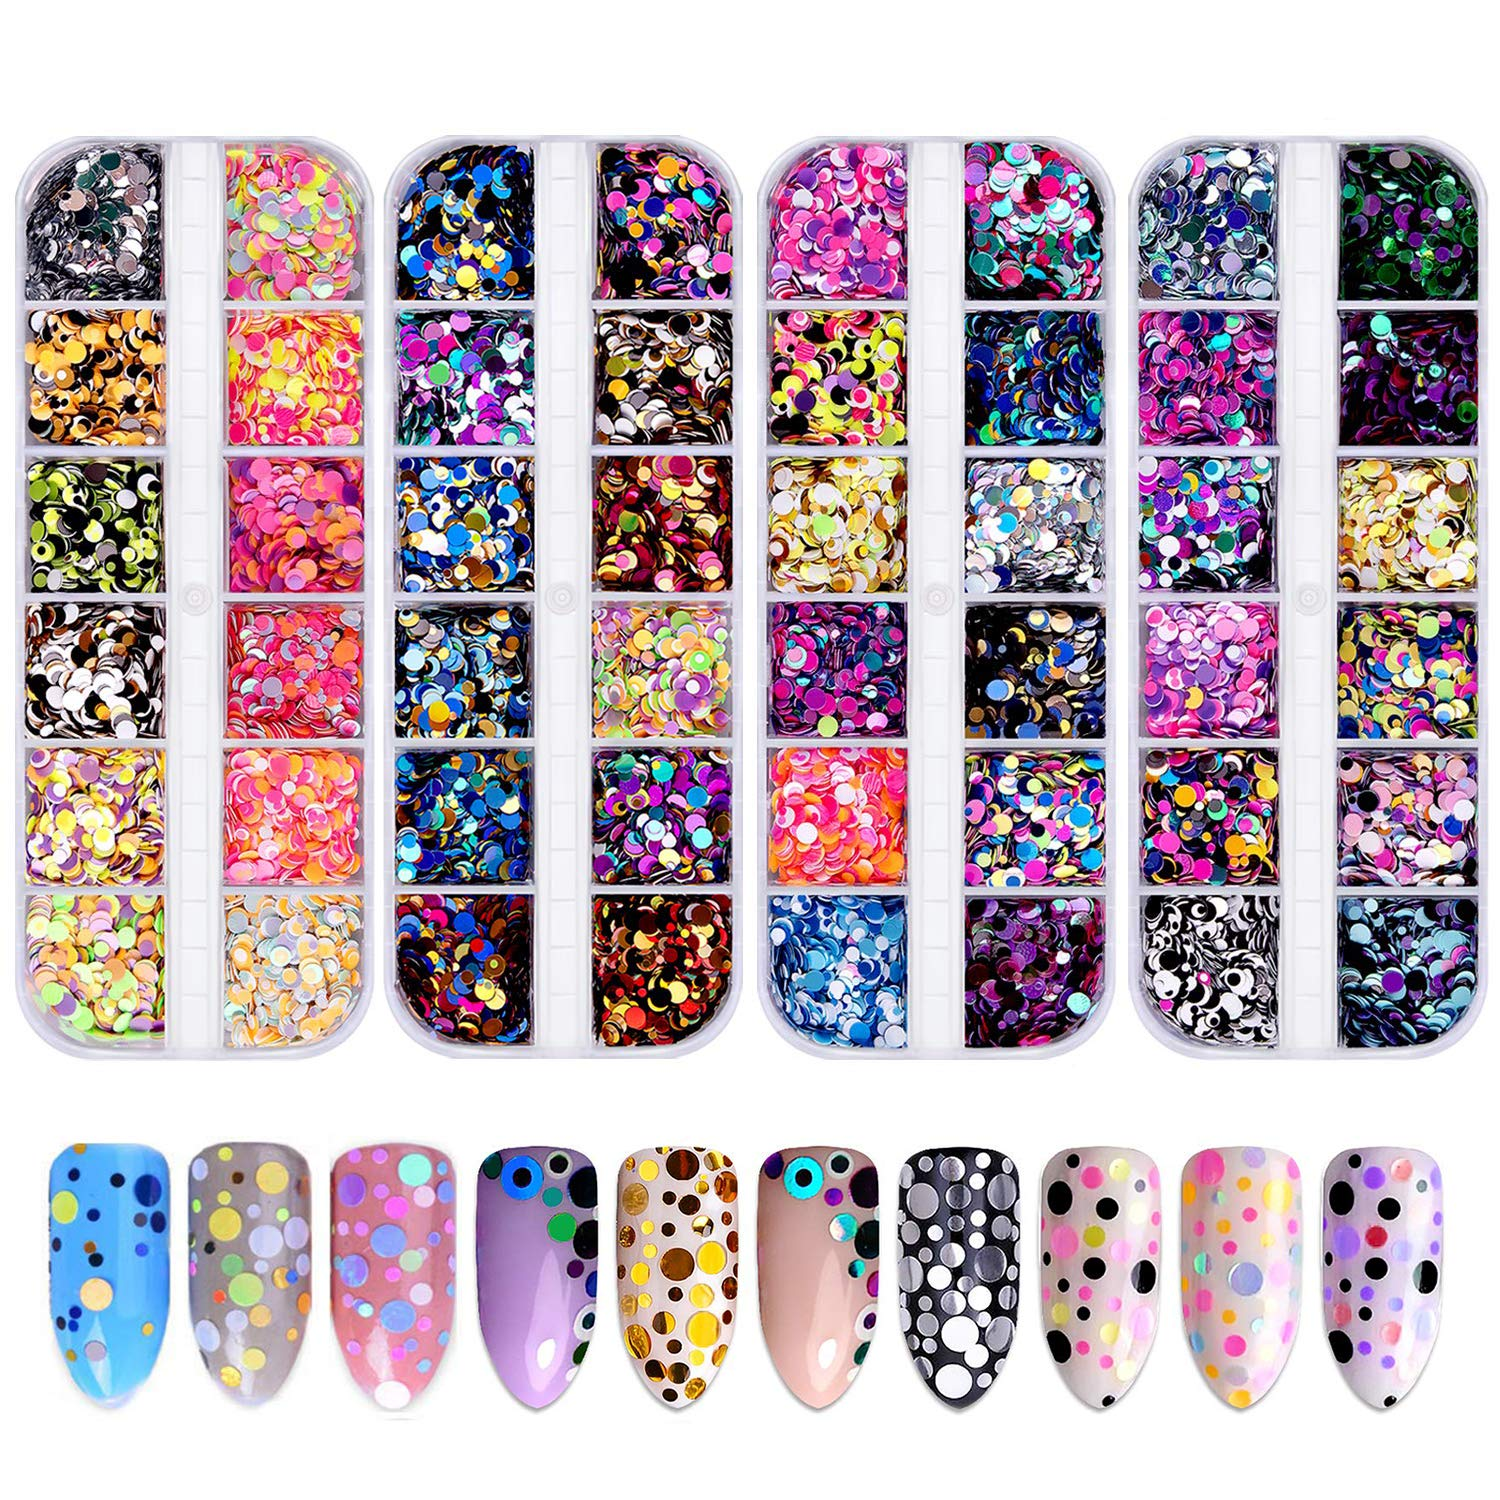 48 Colors Nail Sequins, FITDON Nail Art Flake Nail Glitter Paillette Mixed Round Thin Shining 3D Nail Art Stickers Manicure Make Up DIY Decals Decoration